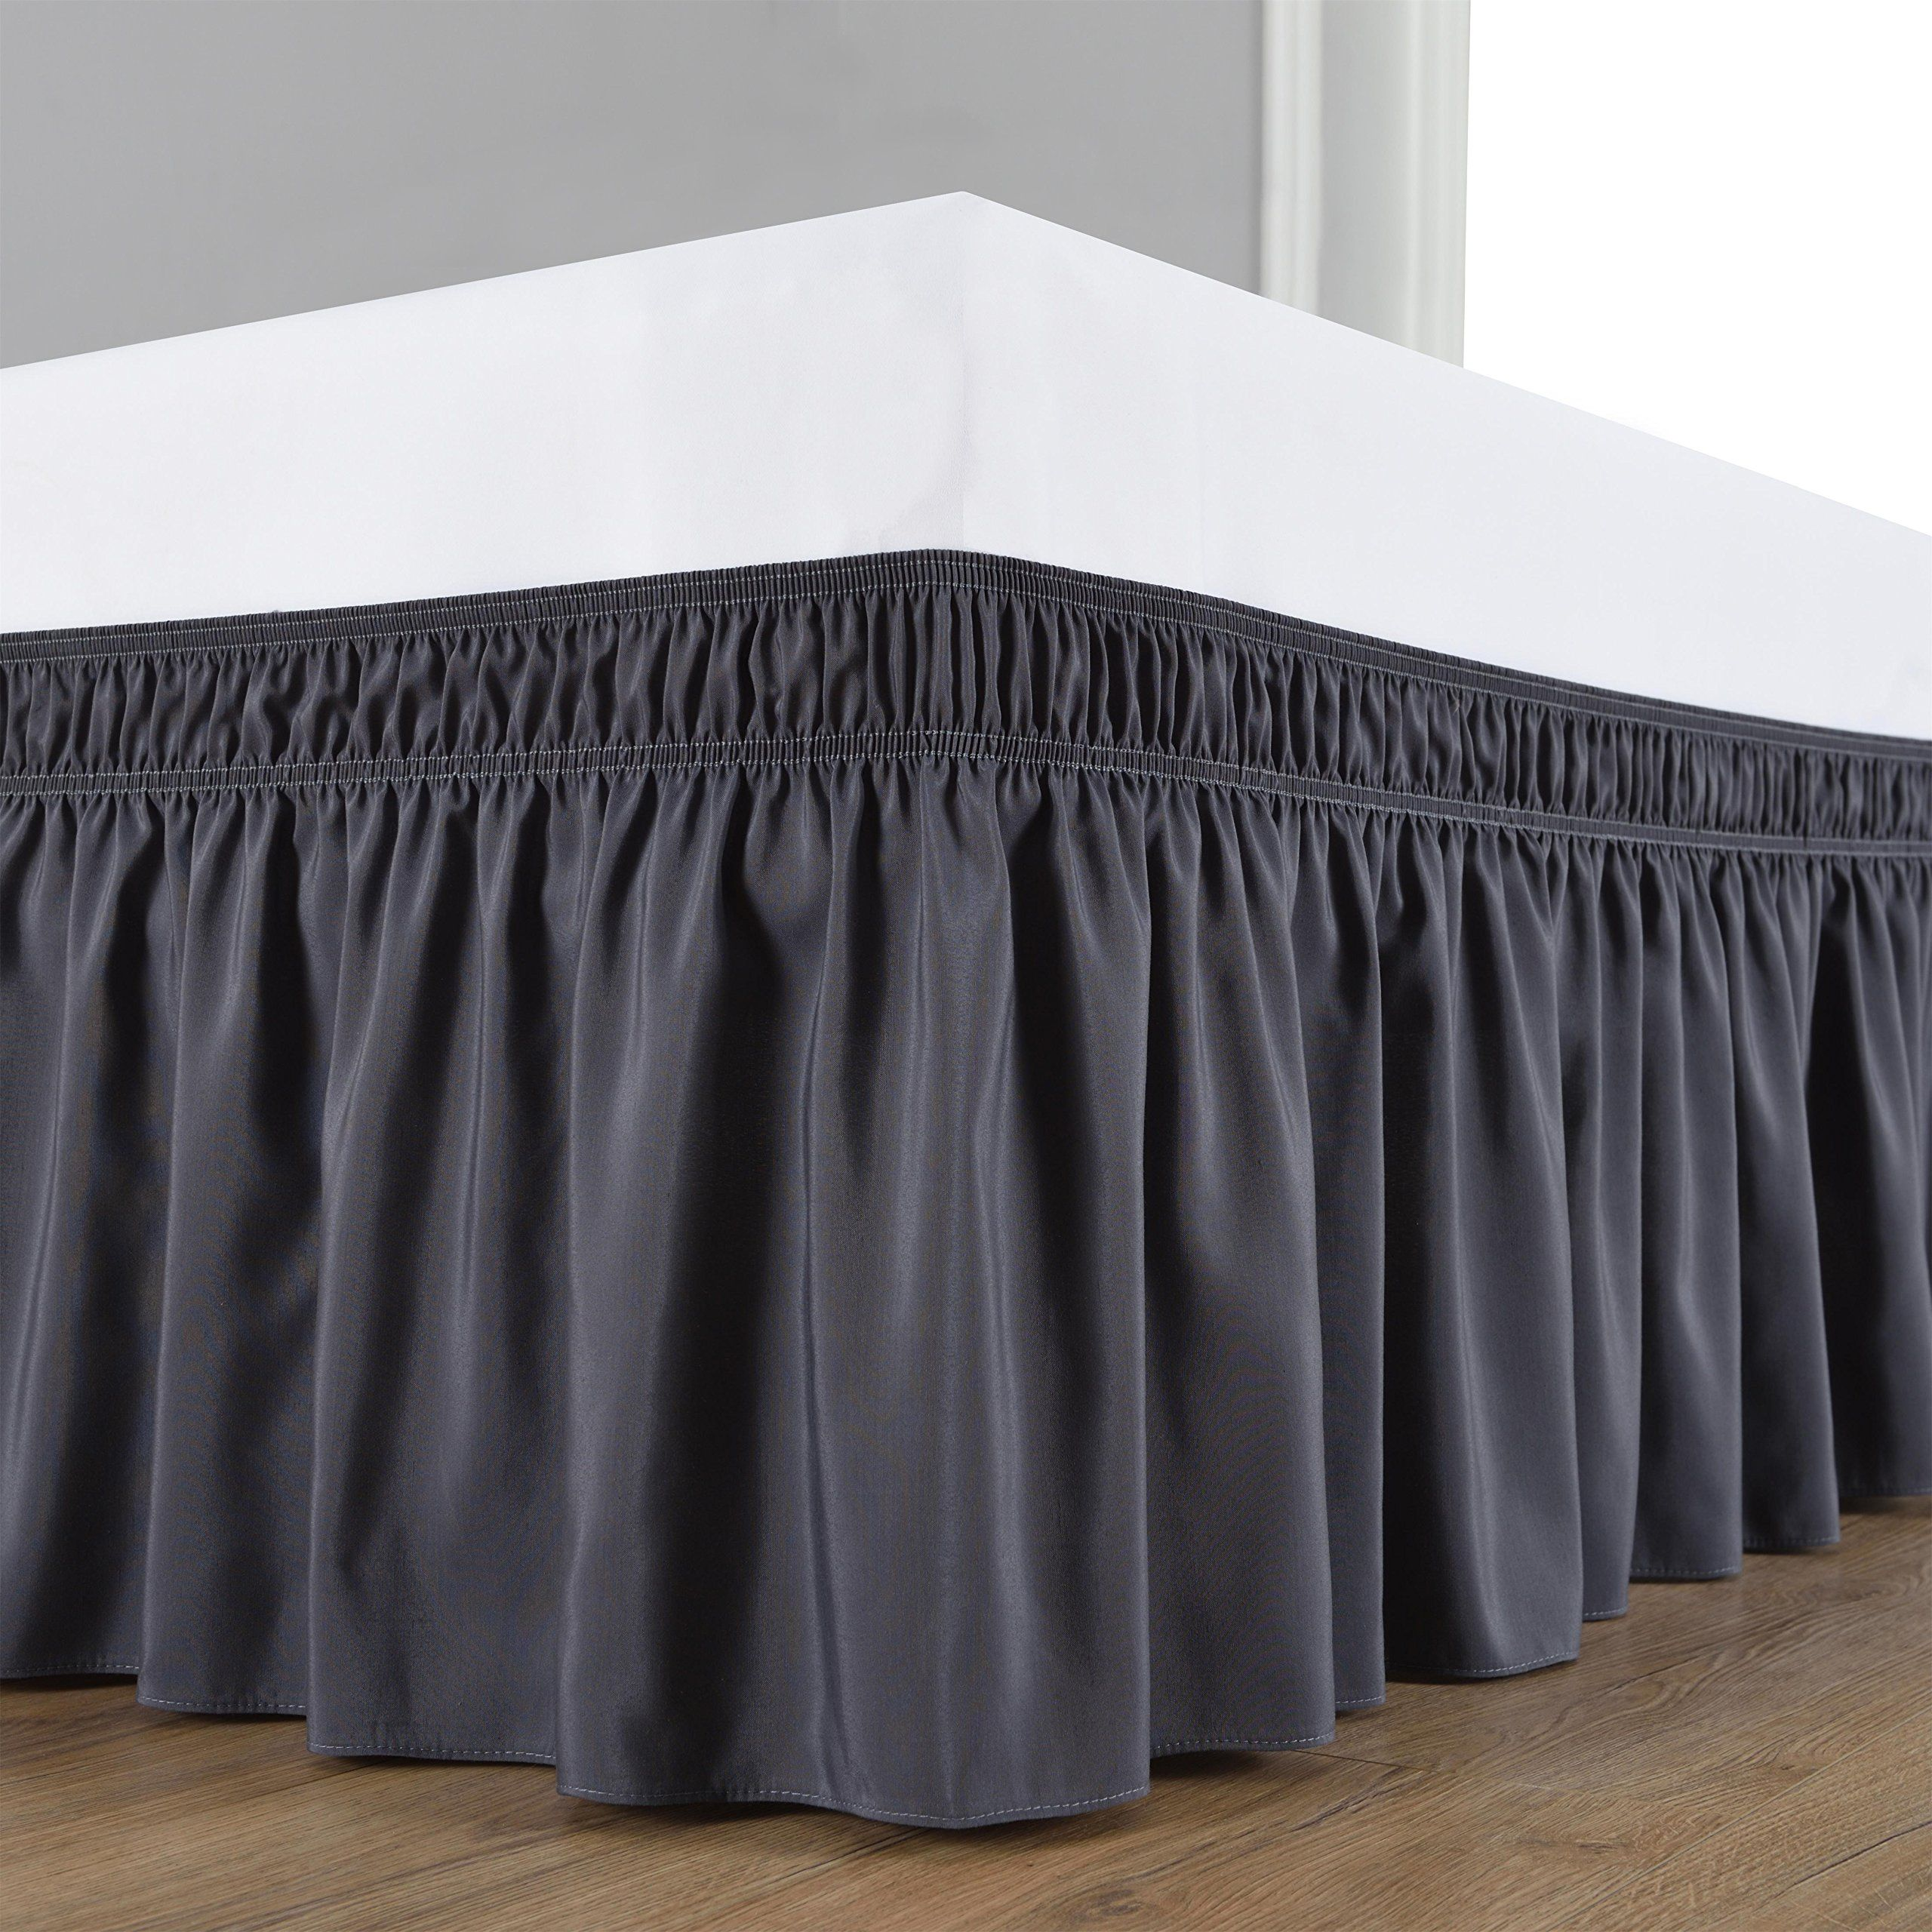 wrap around bed skirt elastic dust ruffle easy fit wrinkle and fade